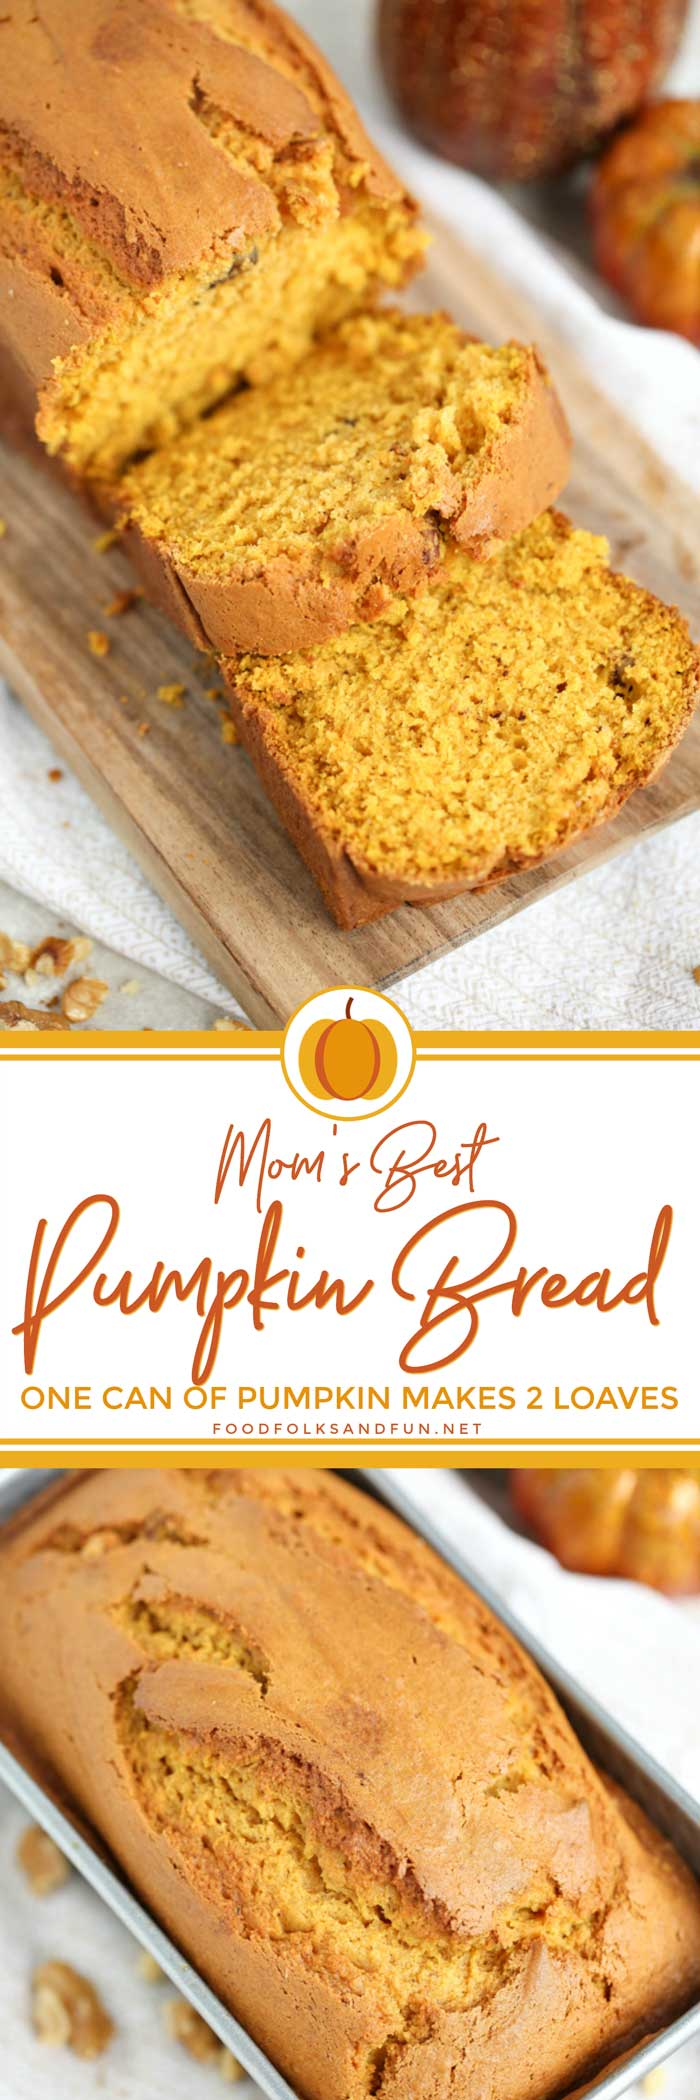 The best Pumpkin Bread recipe EVER!